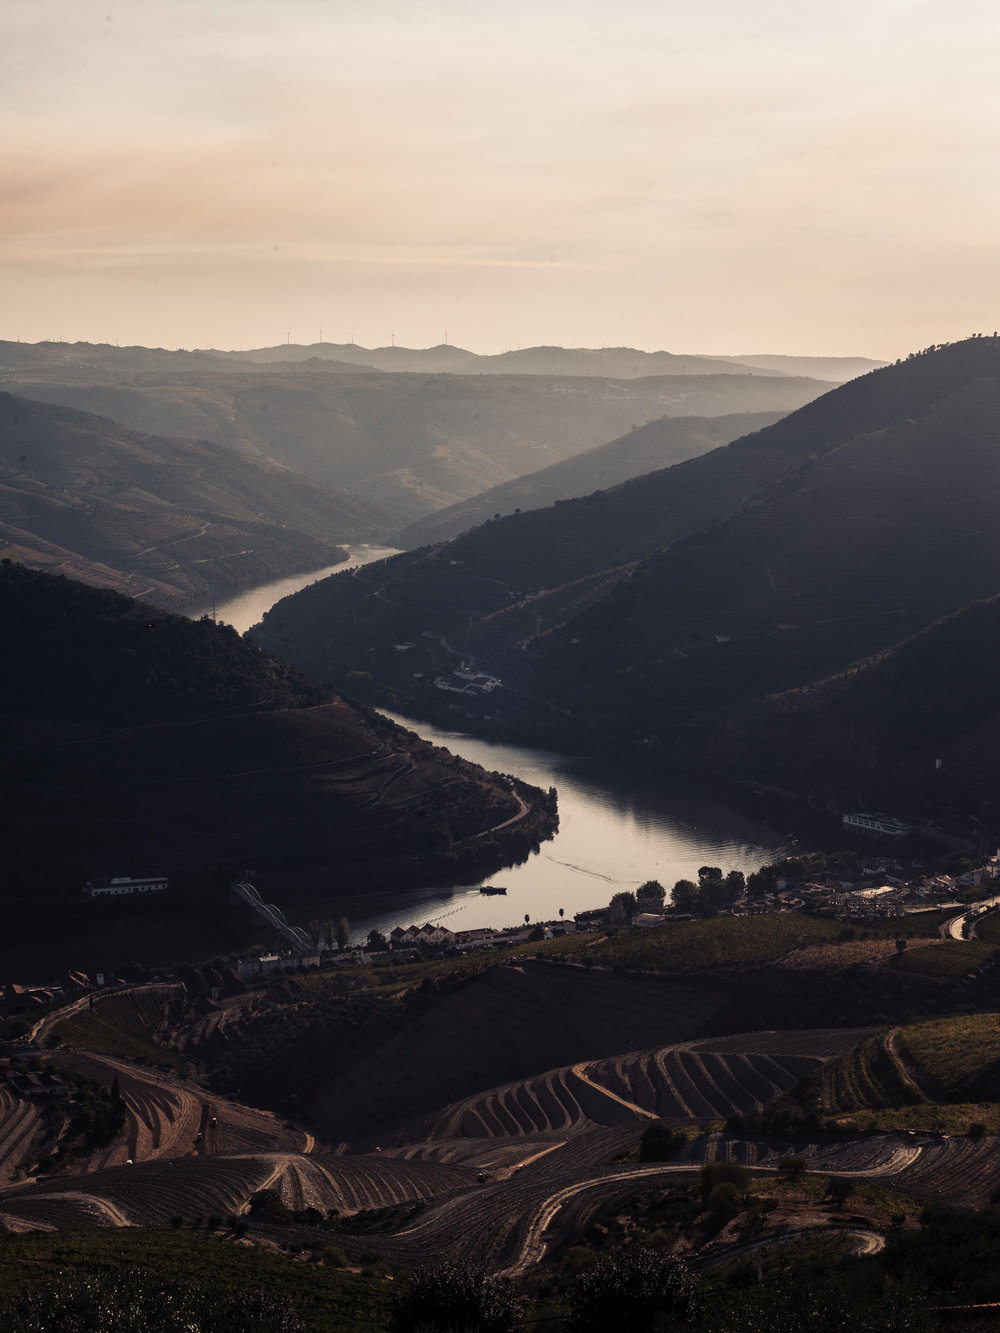 Portugal's Douro valley wine region for EasyJet Traveller.